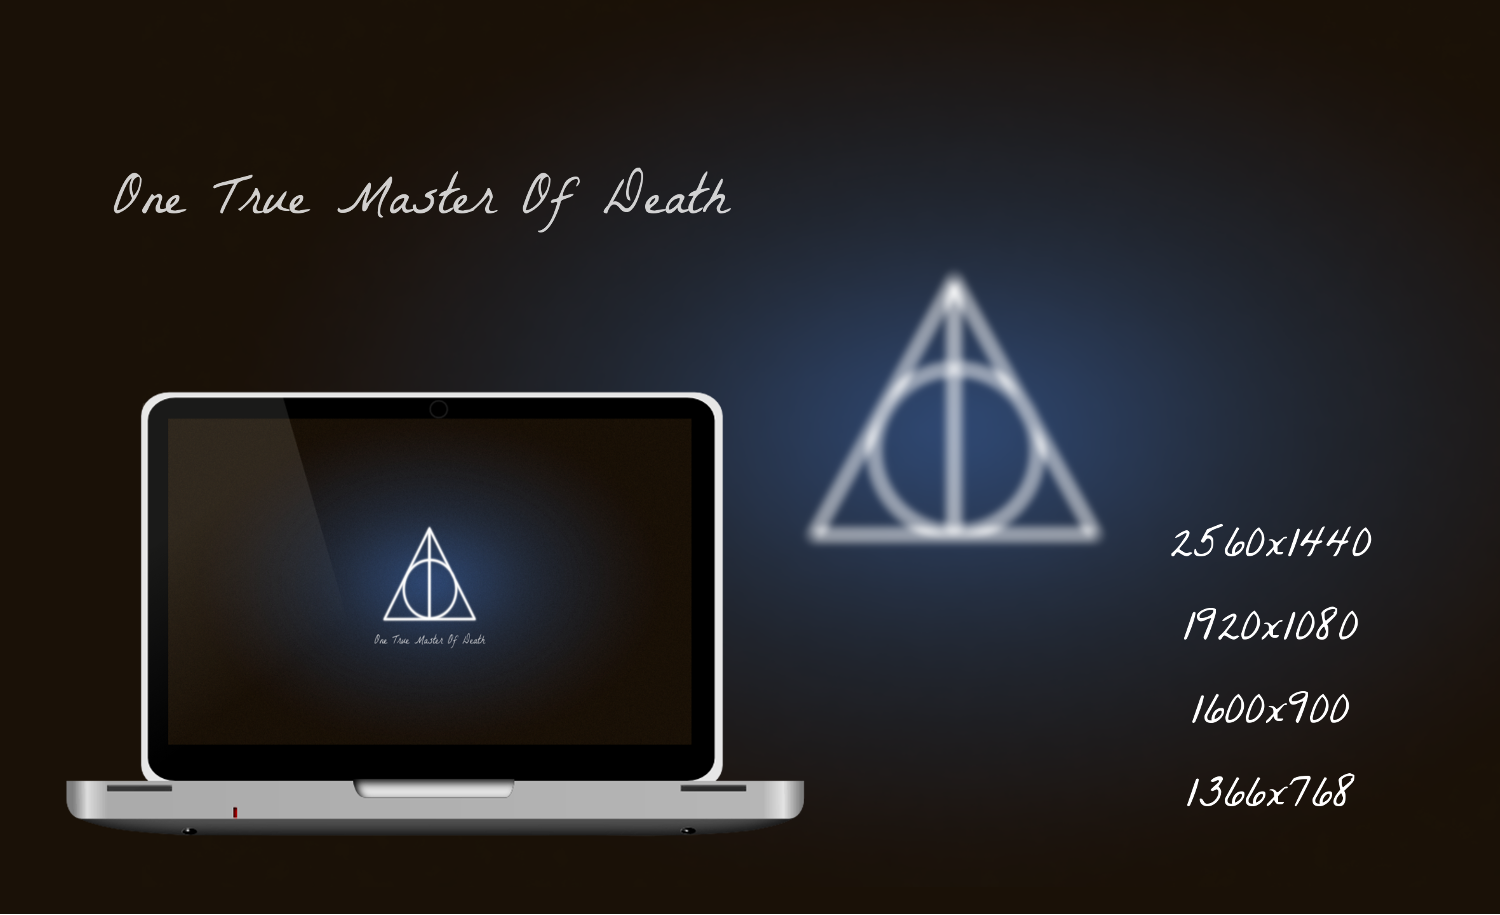 Master of Death - Deathly Hallows by StockThis-StockThat